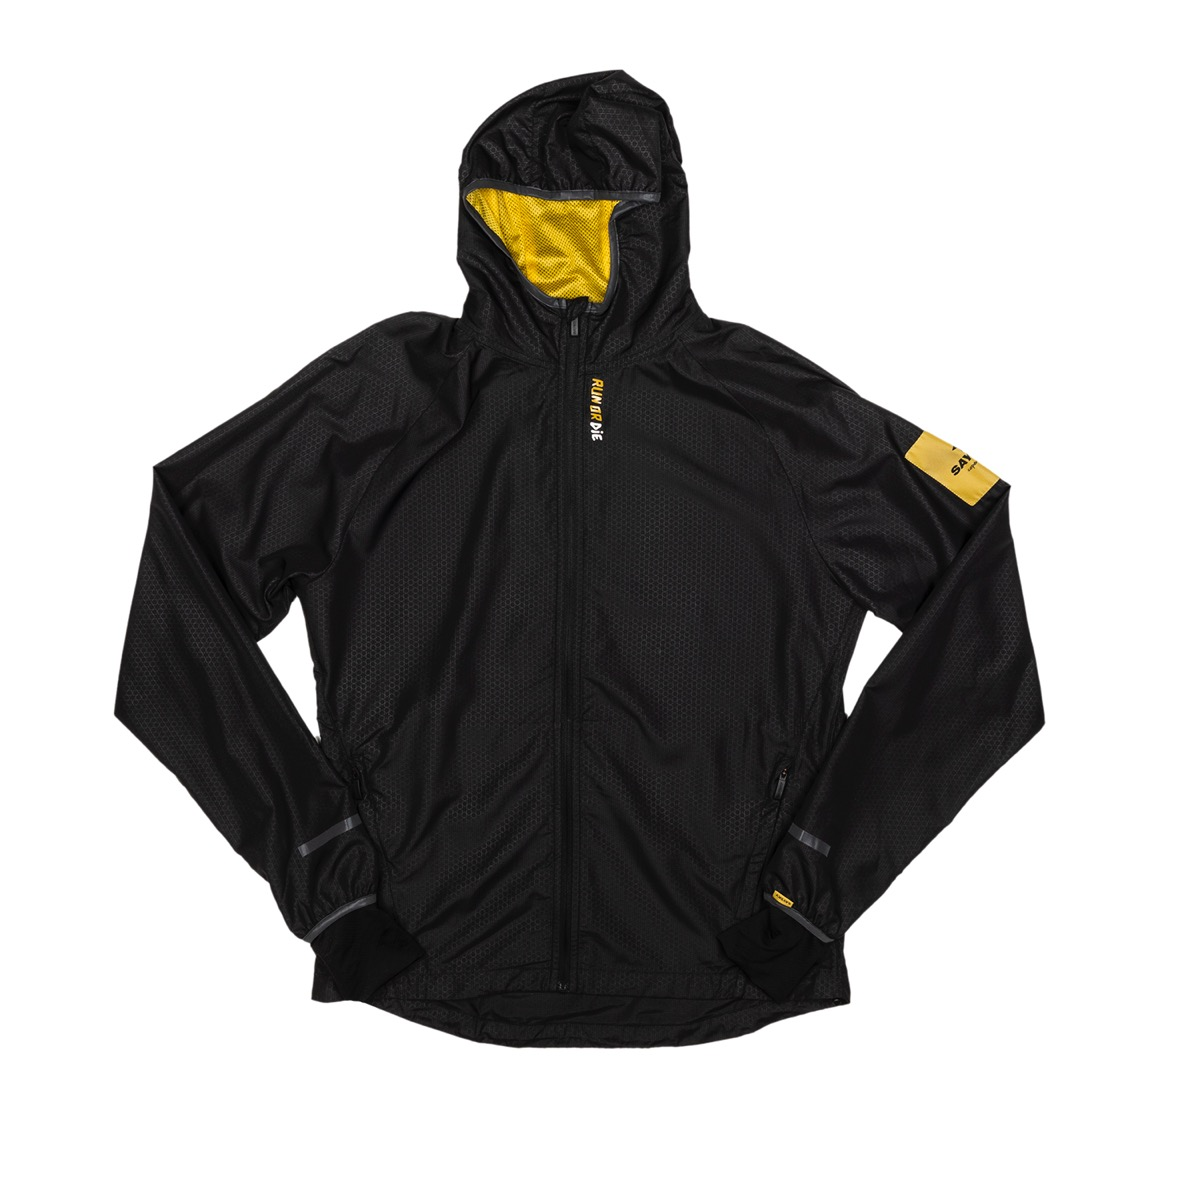 SaySky Run Or Die Pace Jacket Unisex